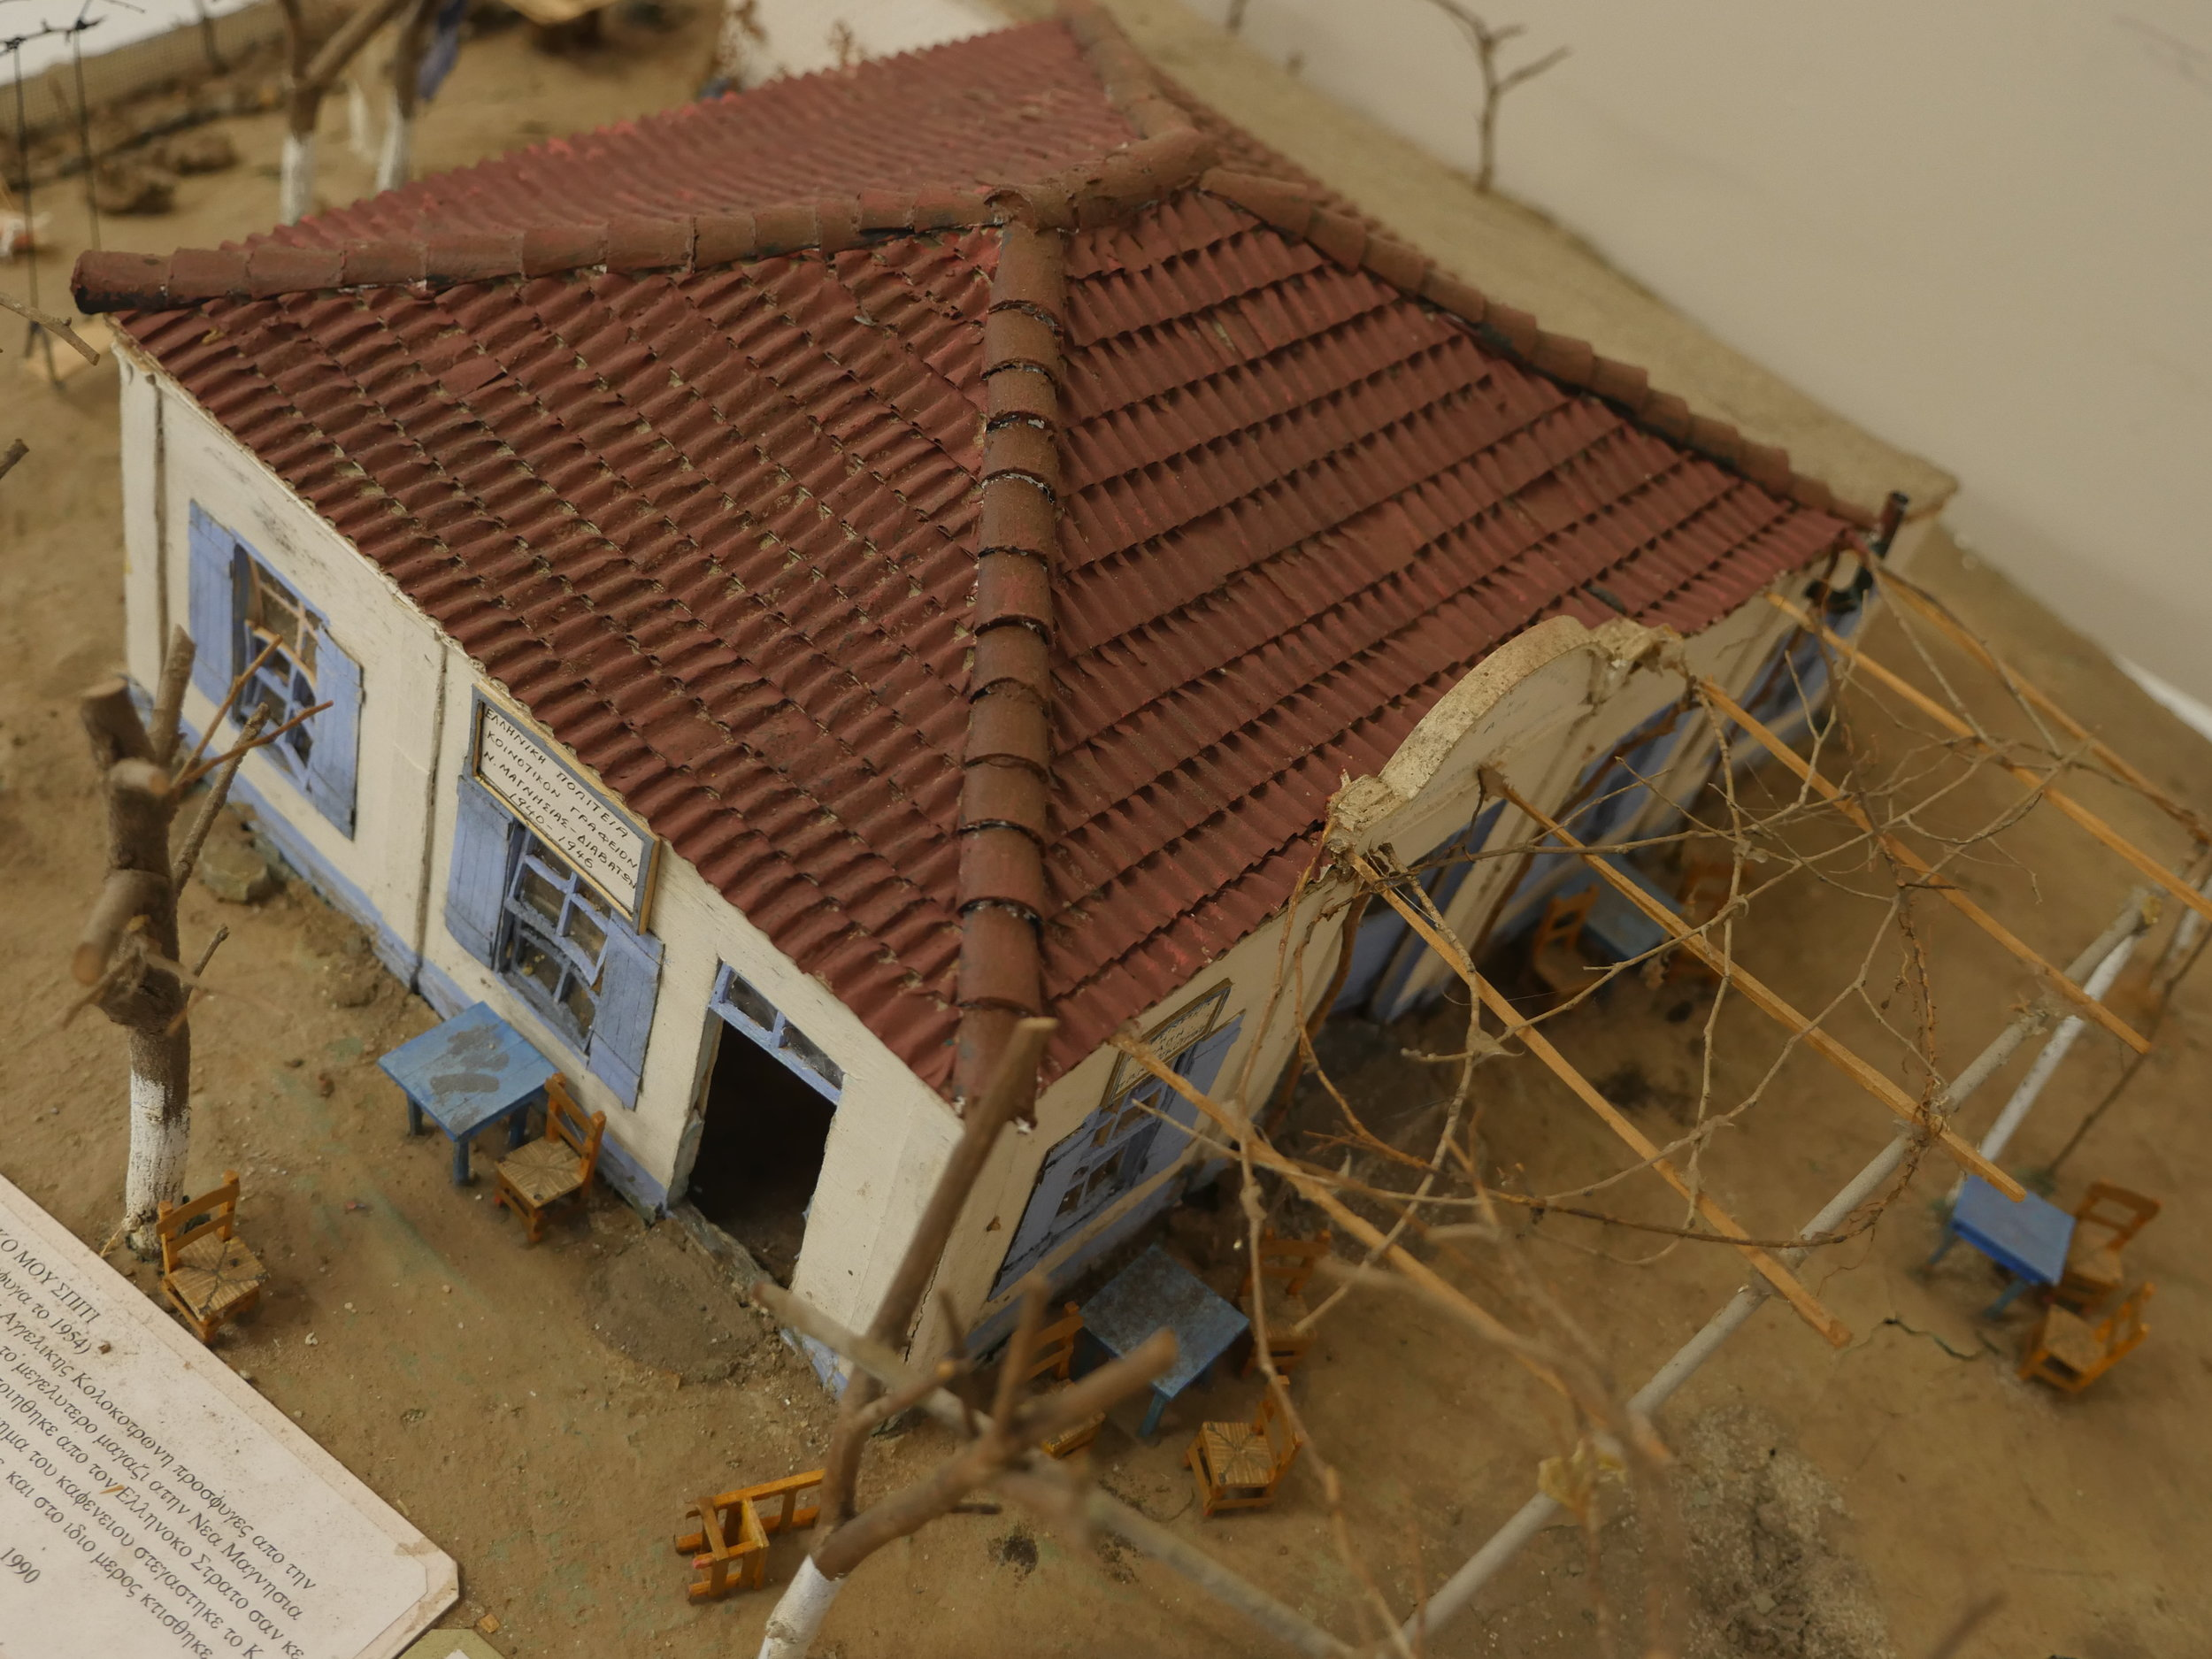 Figure 2. Anastasios Kolokotronis, model of his father's home and café, Nea Magnisia, Thessaloniki. It demonstrates how refugees from the Greek-Turkish population exchange of 1923 adapted government-built refugee housing. The Greek-Australian immigrant -built this model from memory decades later. Photograph by Anoma Pieris, 2016.